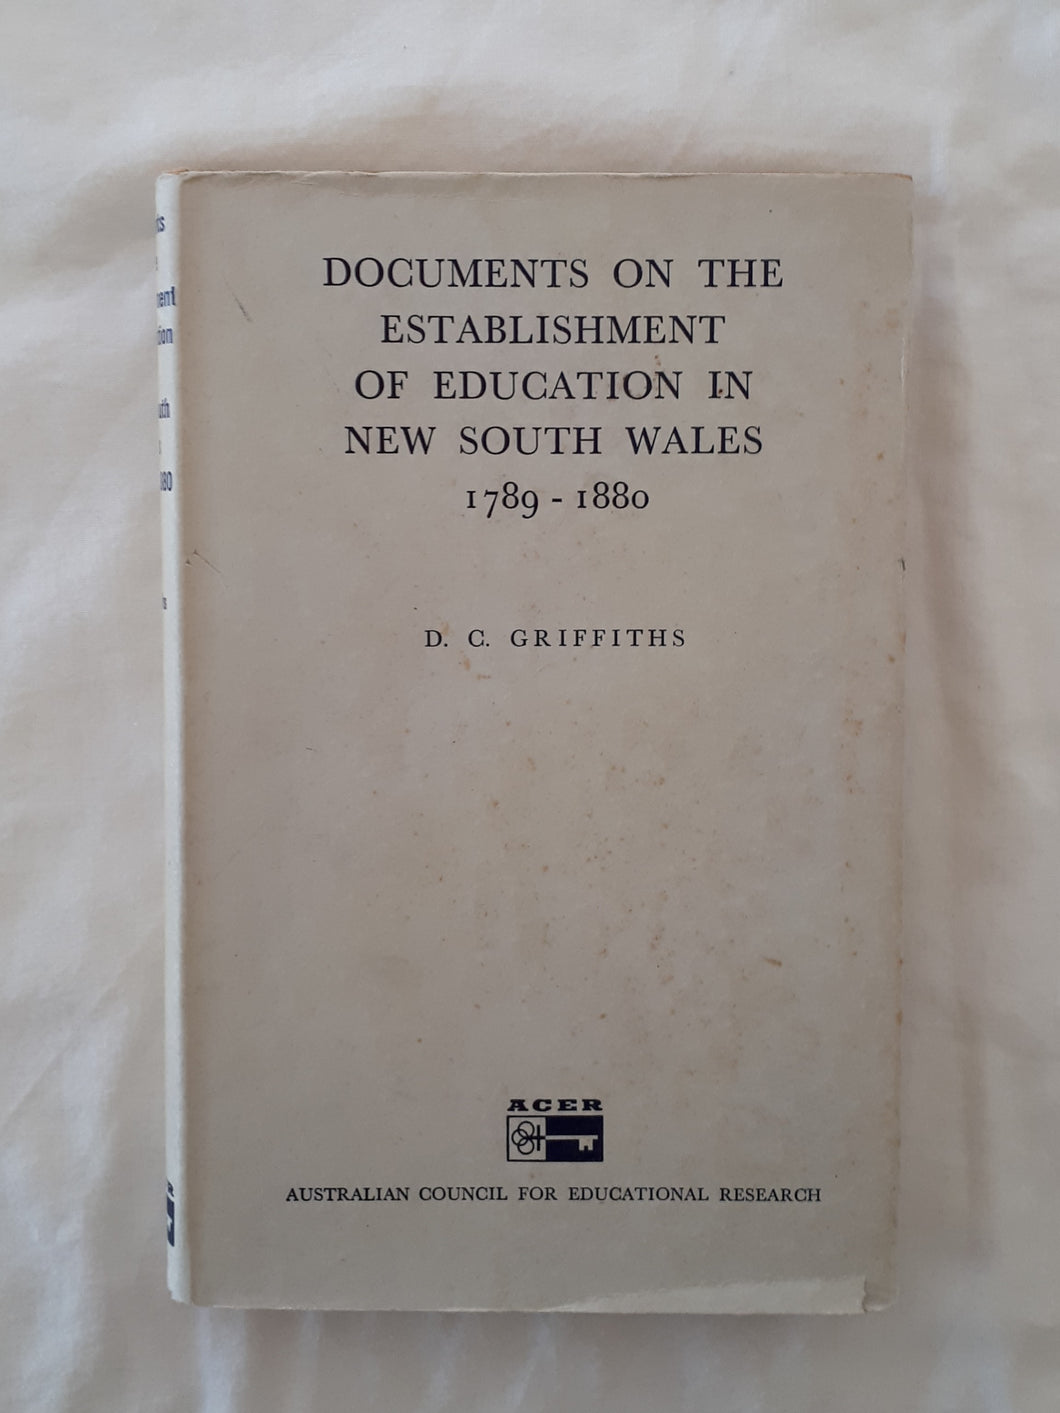 Documents on the Establishment of Education in New South Wales 1789 - 1880 by D. C. Griffiths